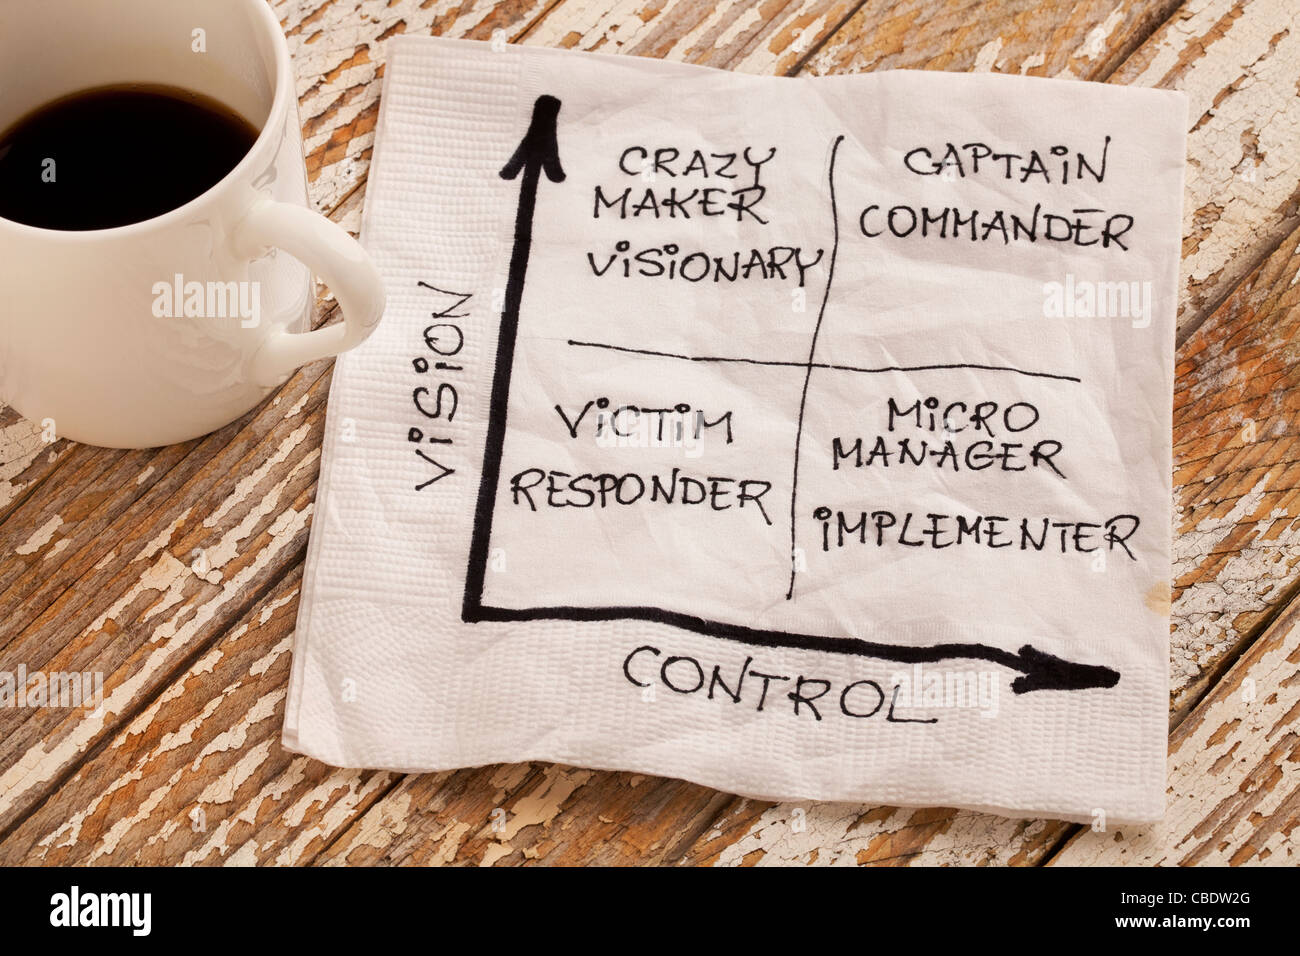 vision and control concept - self-management matrix - Stock Image